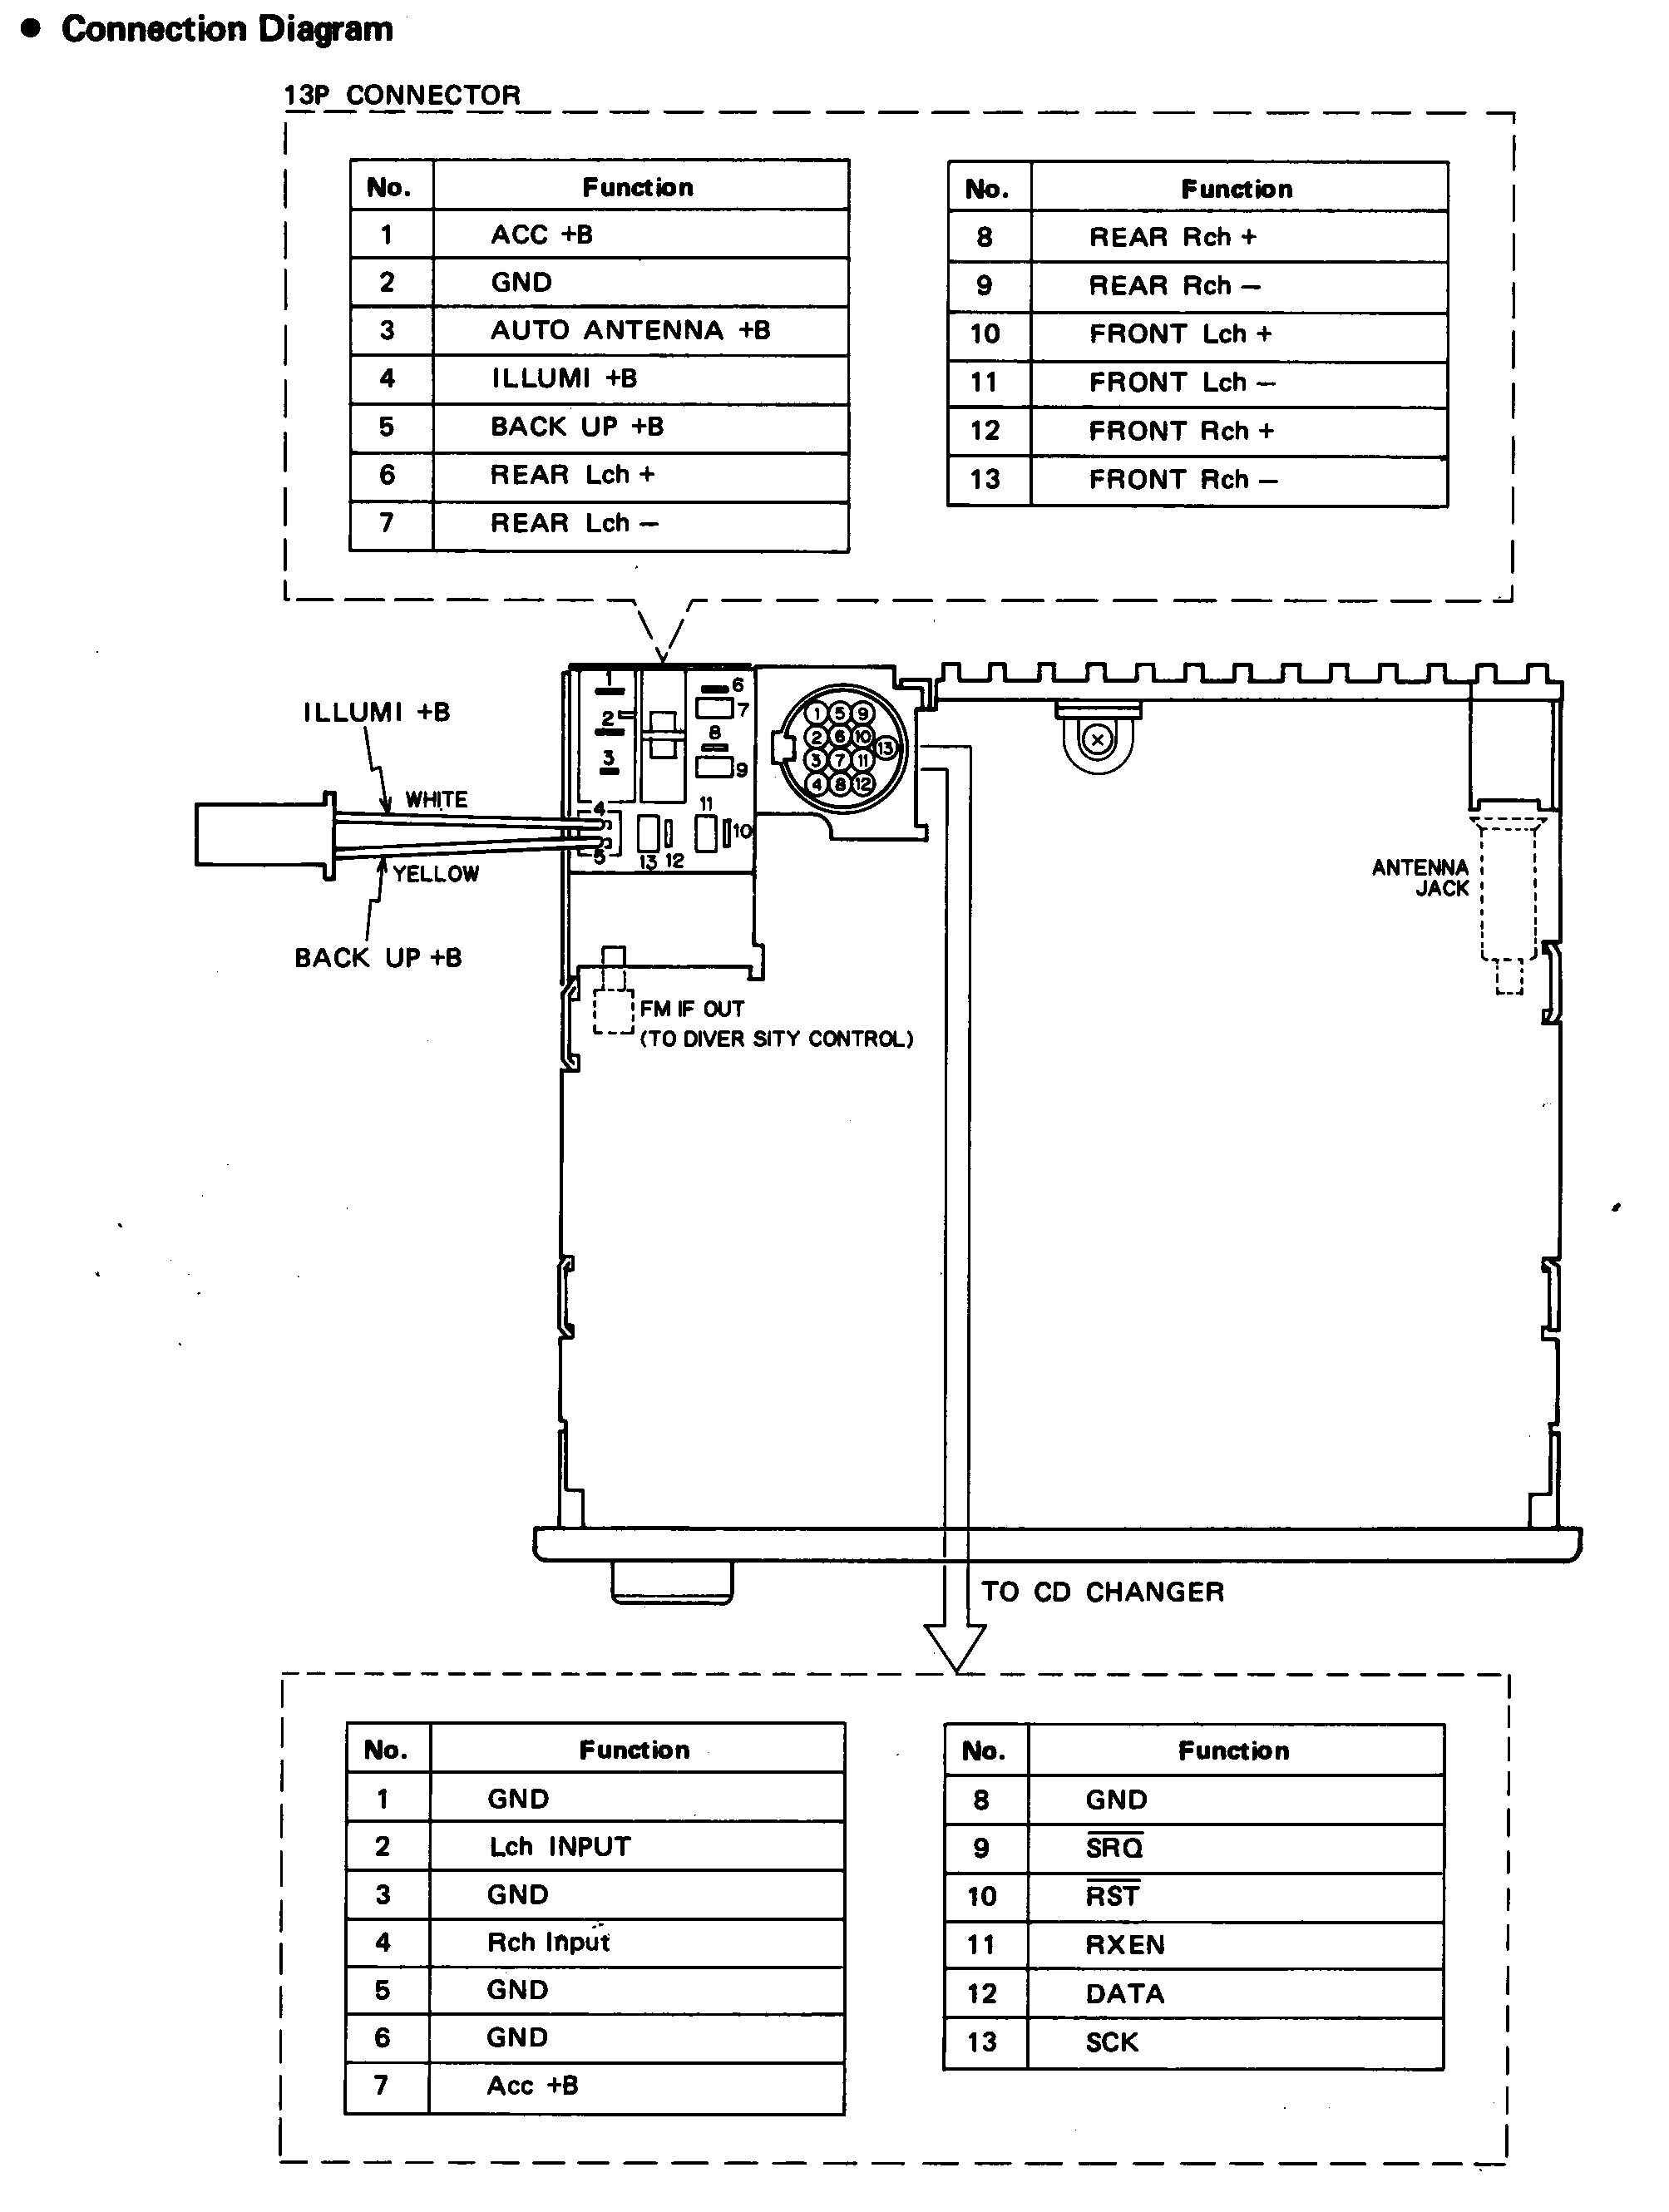 delphi radio wiring diagram Download-Delphi Alternator Wiring Diagram Refrence Bmw E34 Radio Wiring Delphi Delco Radio Wiring Diagram Bmw E30 14-g